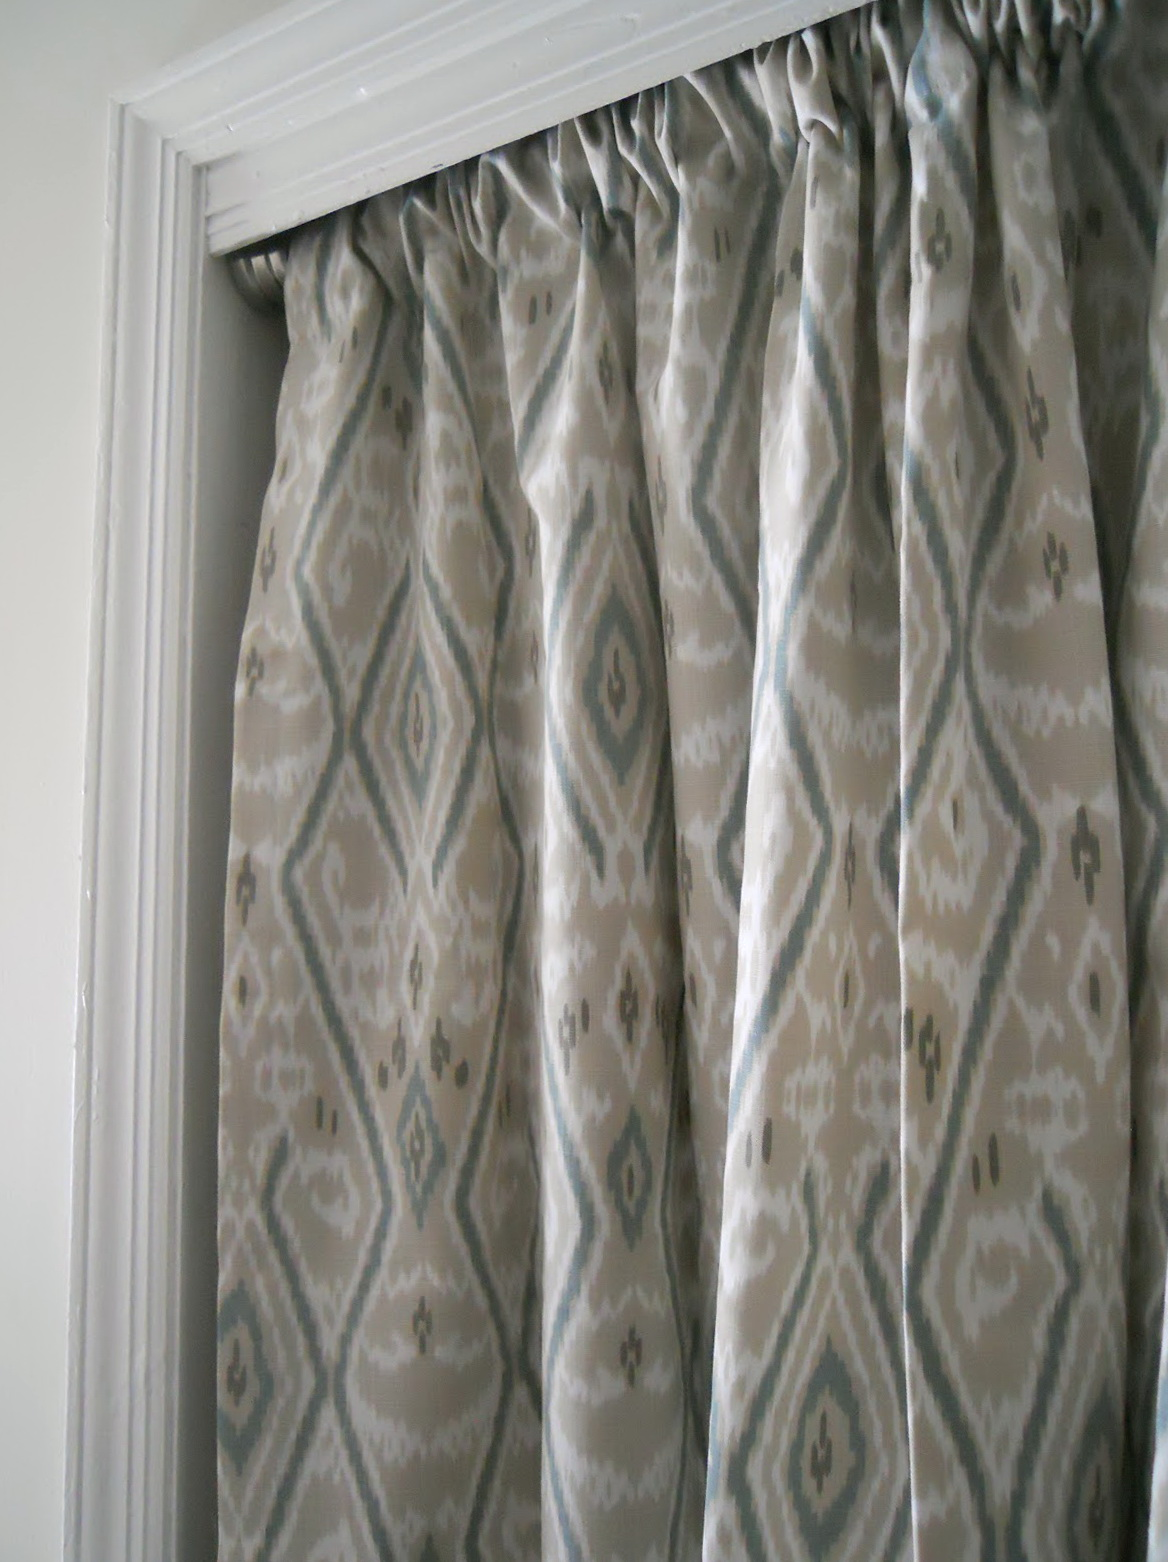 Shower Rod Curtain Tension Rod Target | Home Design Ideas